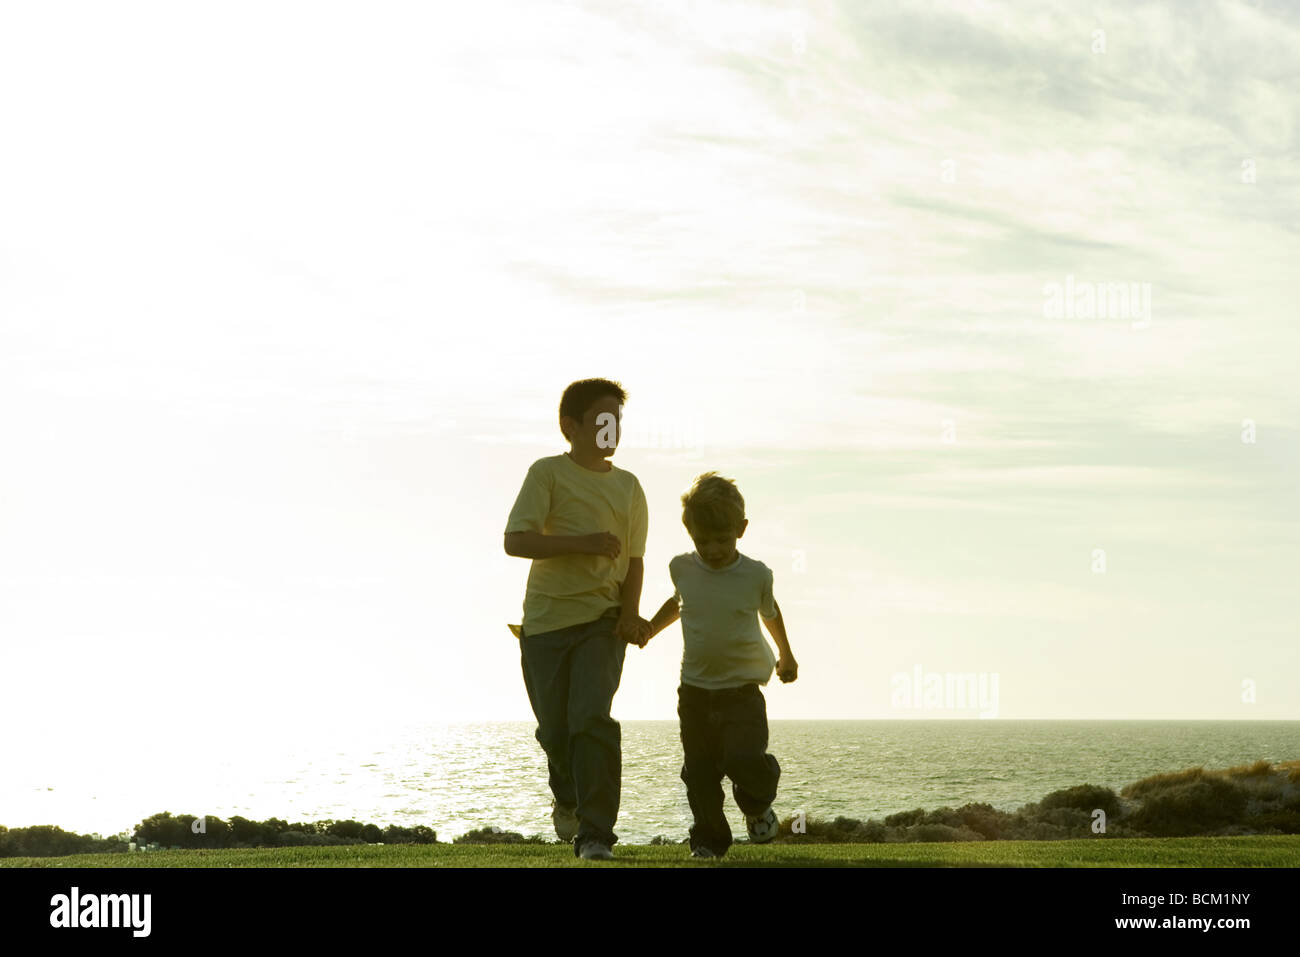 Two boys running and holding hands, ocean horizon in background - Stock Image